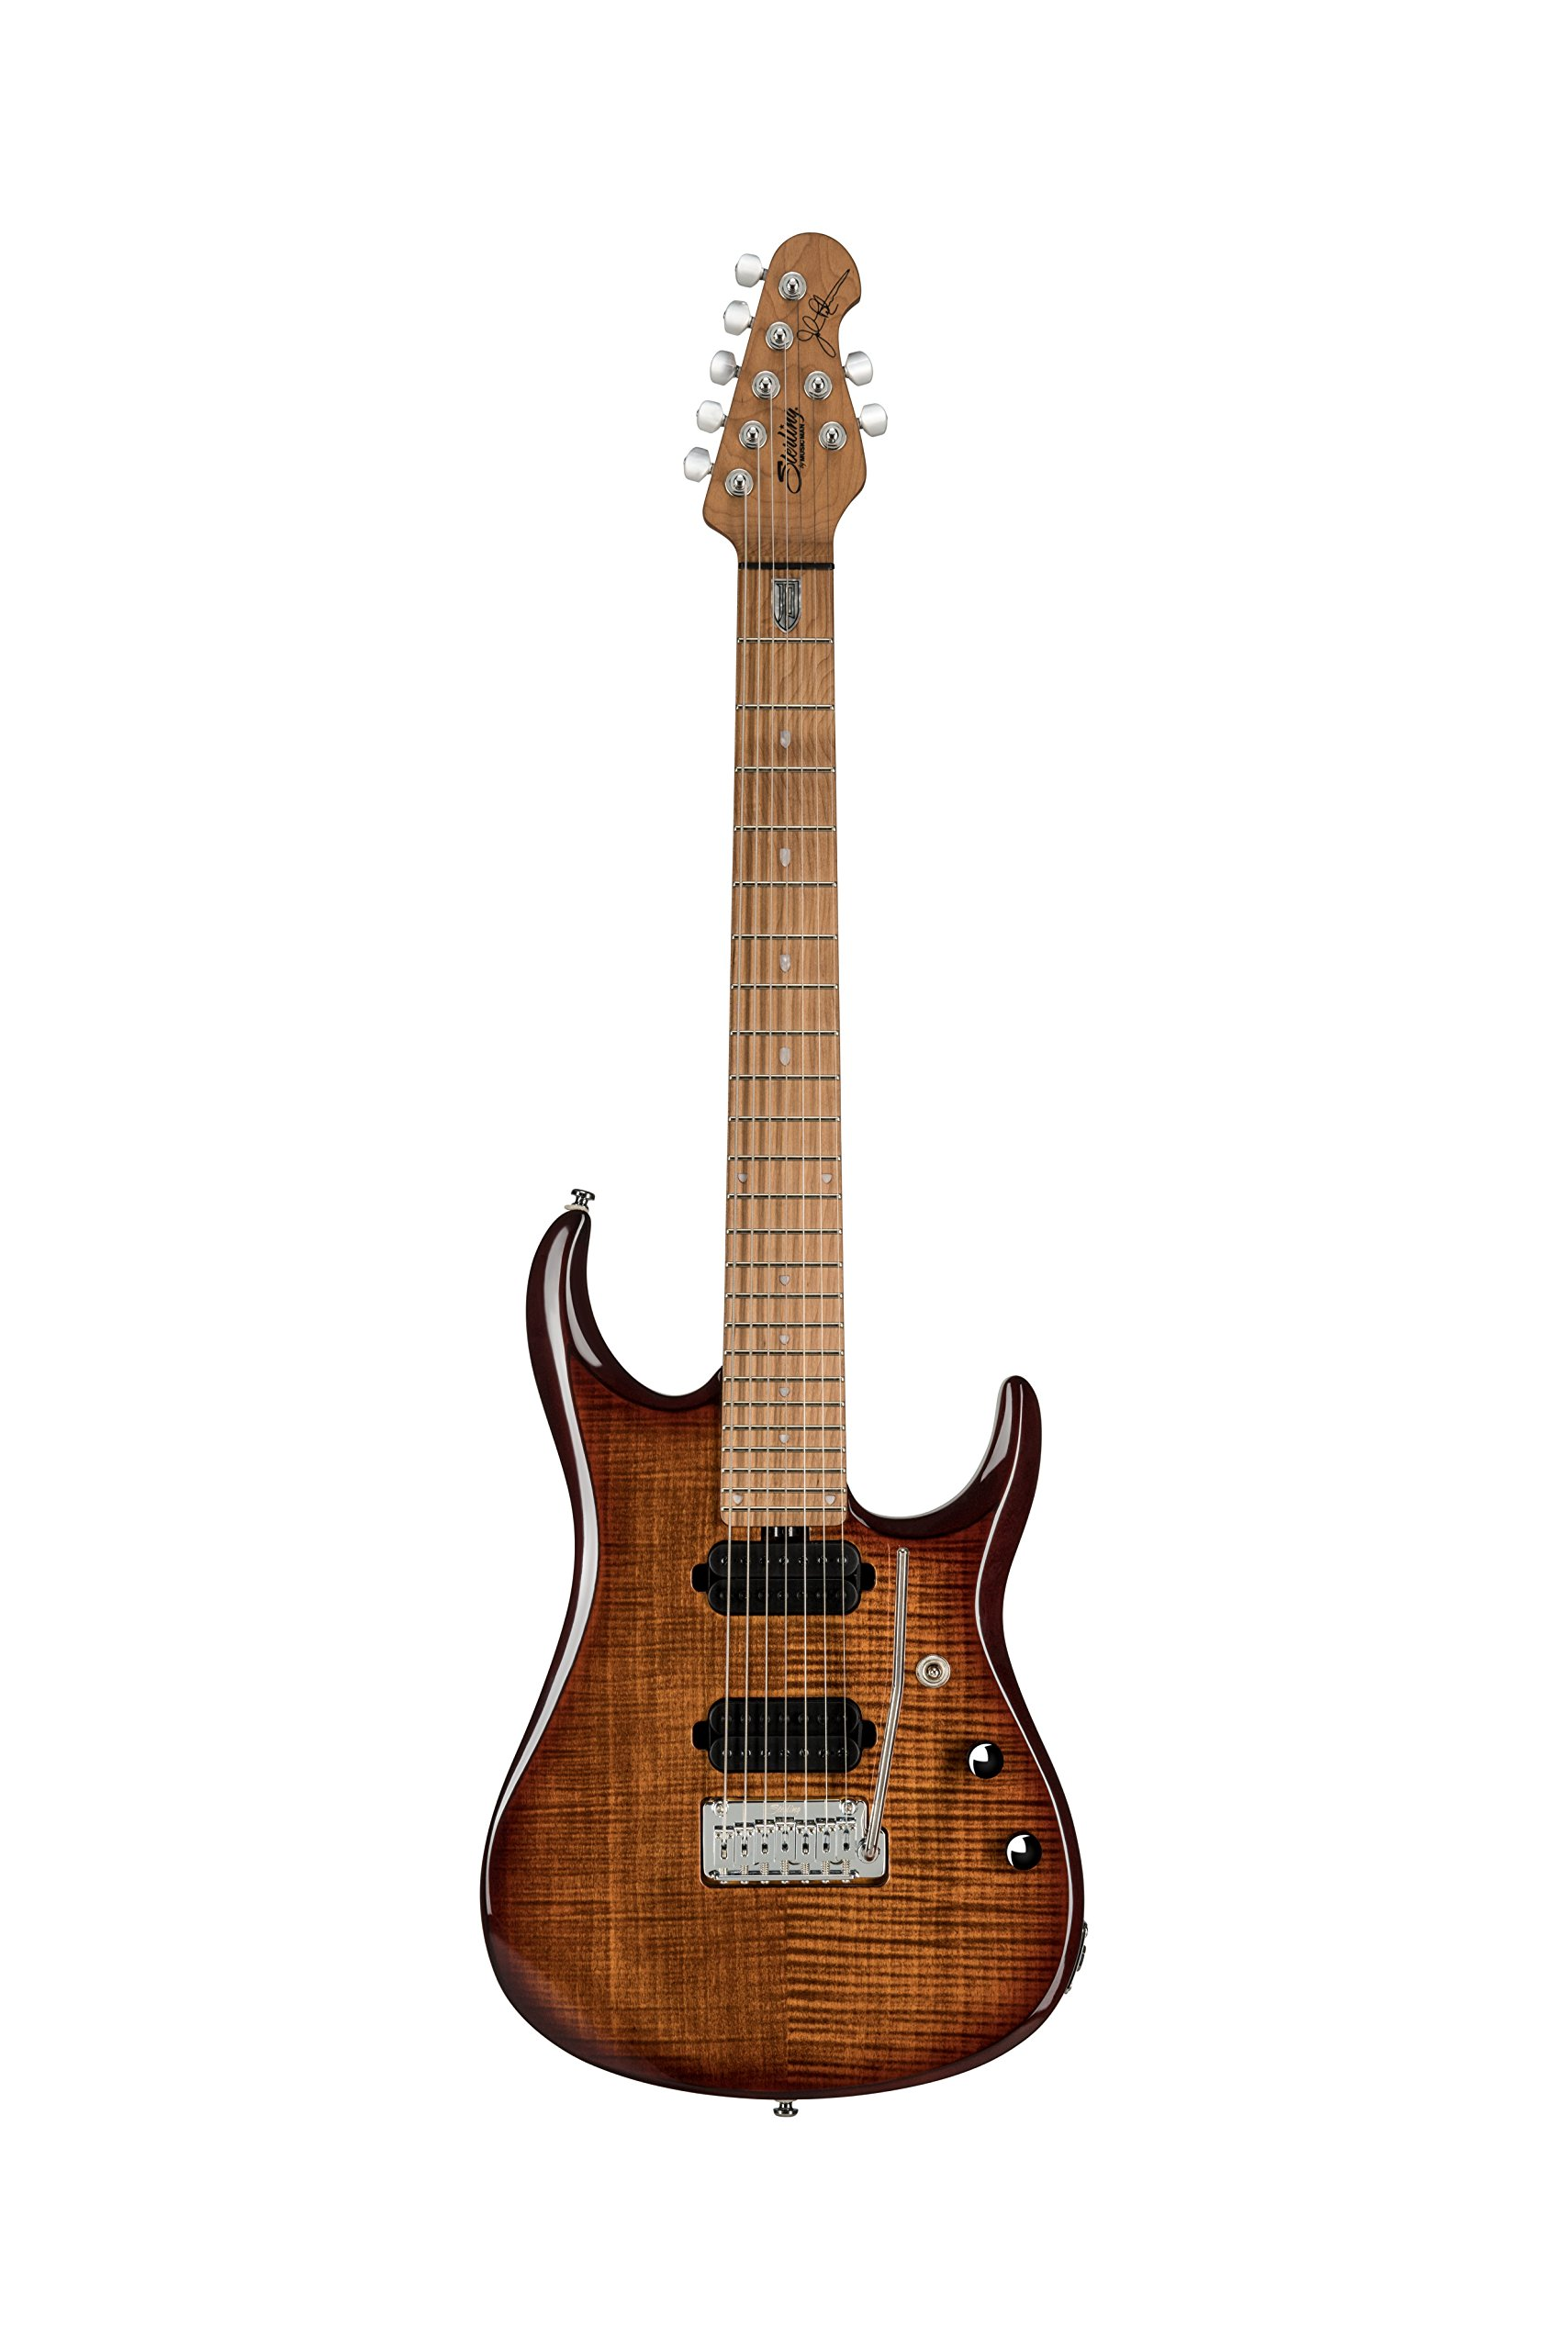 Sterling by Music Man JP150 Electric Guitar with Flame Maple Top in Island Burst, 7-String